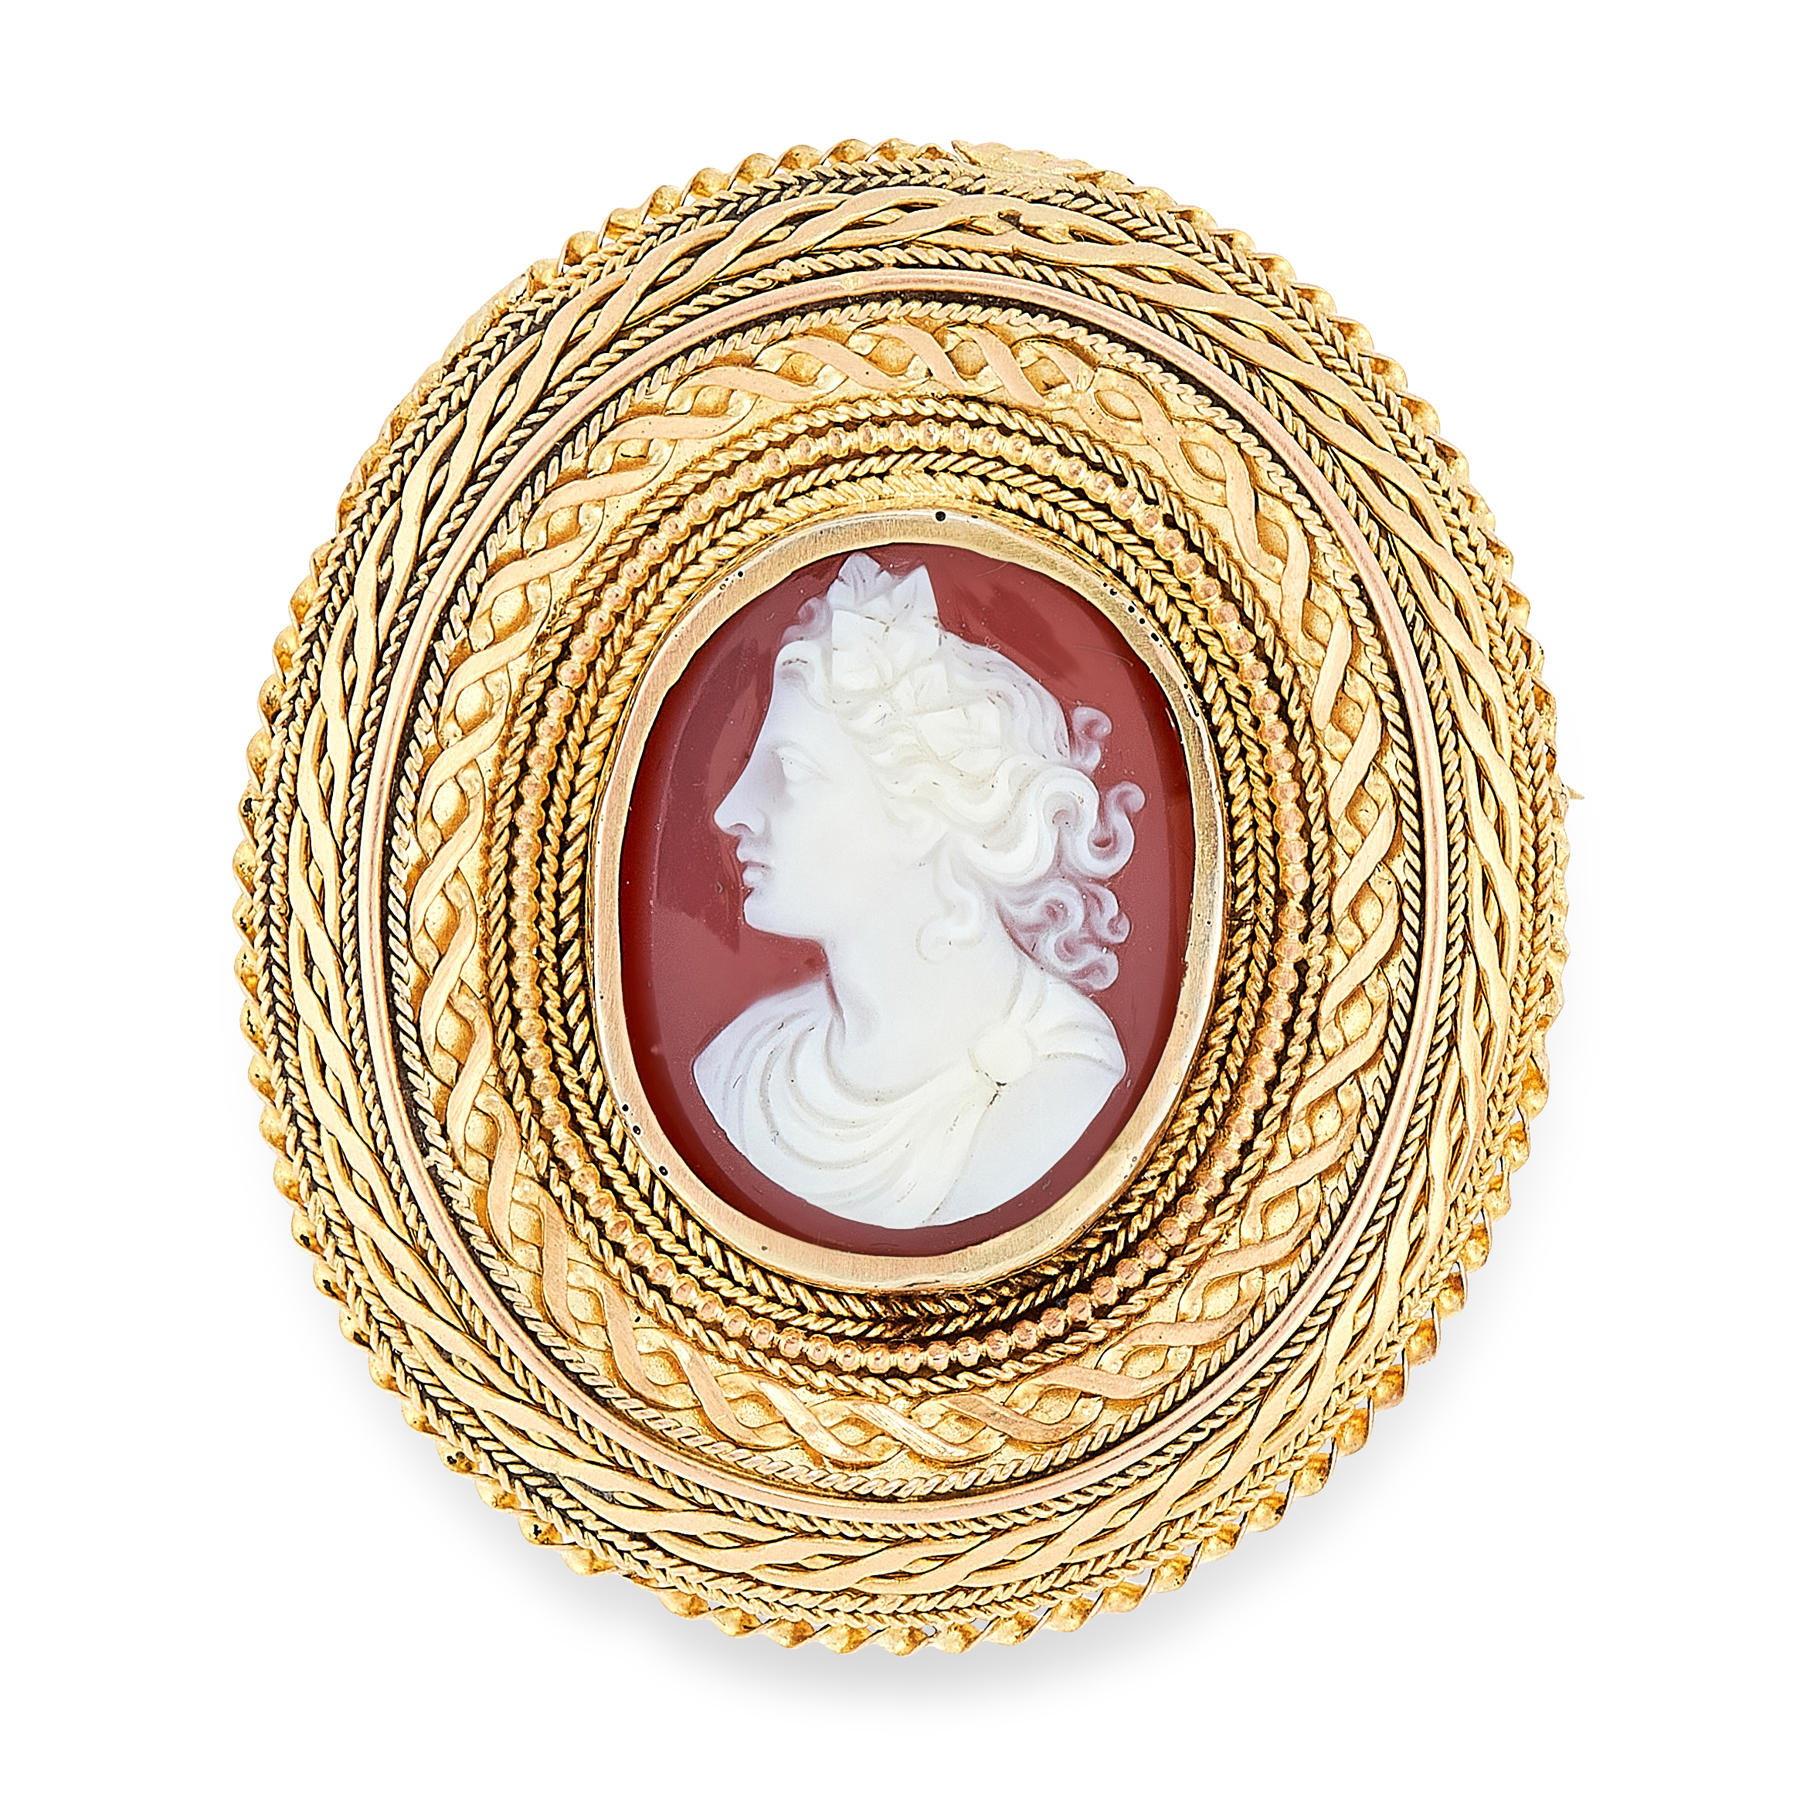 AN ANTIQUE AUSTRALIAN CAMEO BROOCH, GAUNT in high carat yellow gold, depicting a lady in an ornate